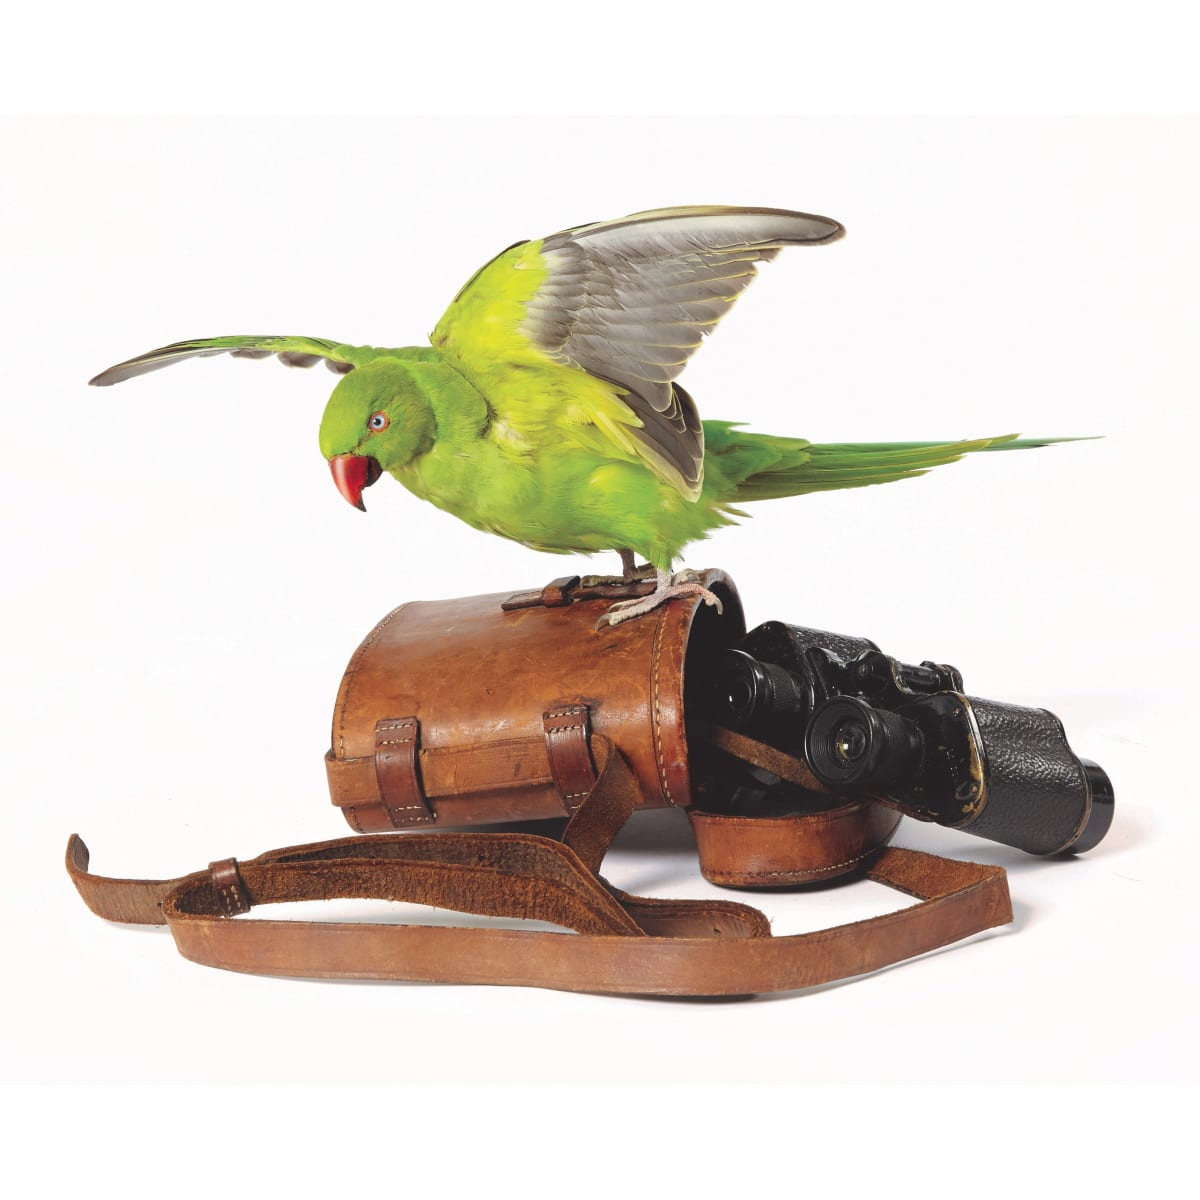 Fiona Dean Right to Remain, 2019 ring-necked parakeet with antique military binoculars in mirrored case 38 x 65 x 55 cm